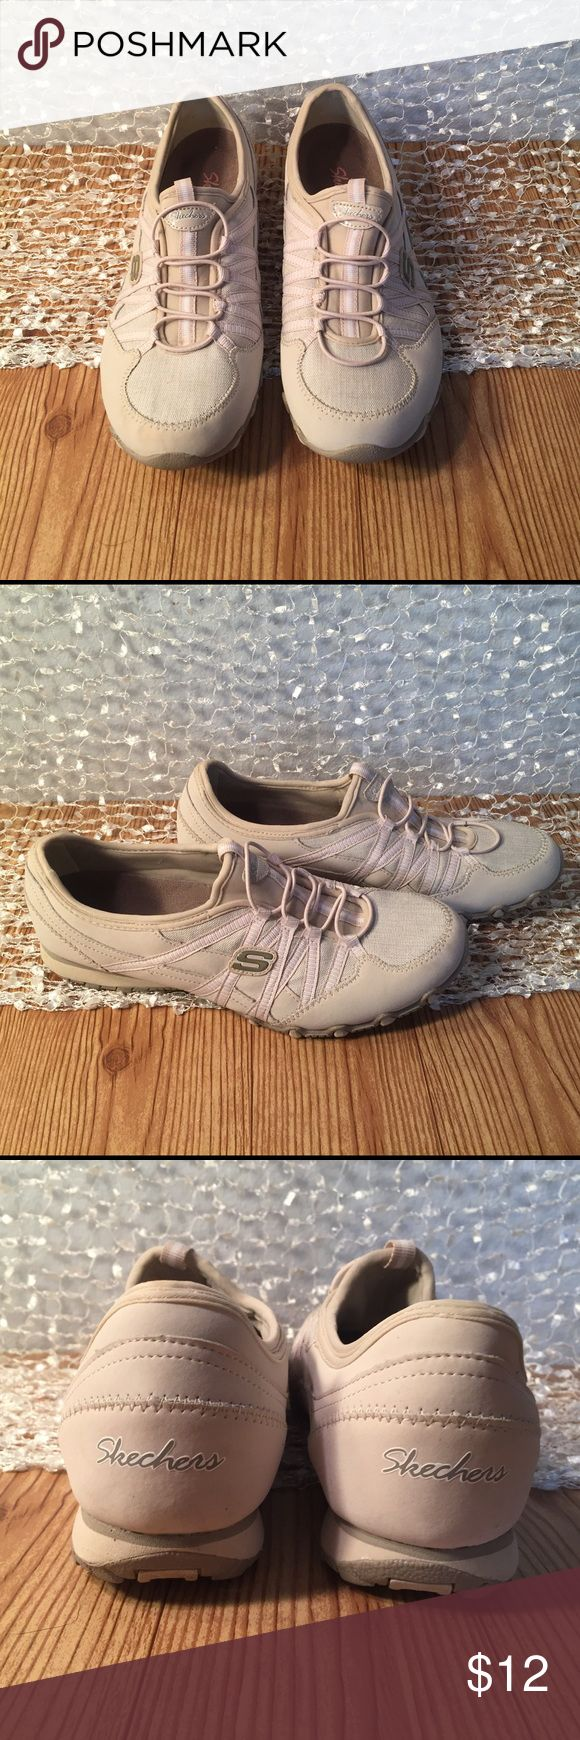 Tan and cream colored Skechers slip-on sneakers. Tan and cream colored Skechers slip-on sneakers. Size 9 Skechers Shoes Sneakers